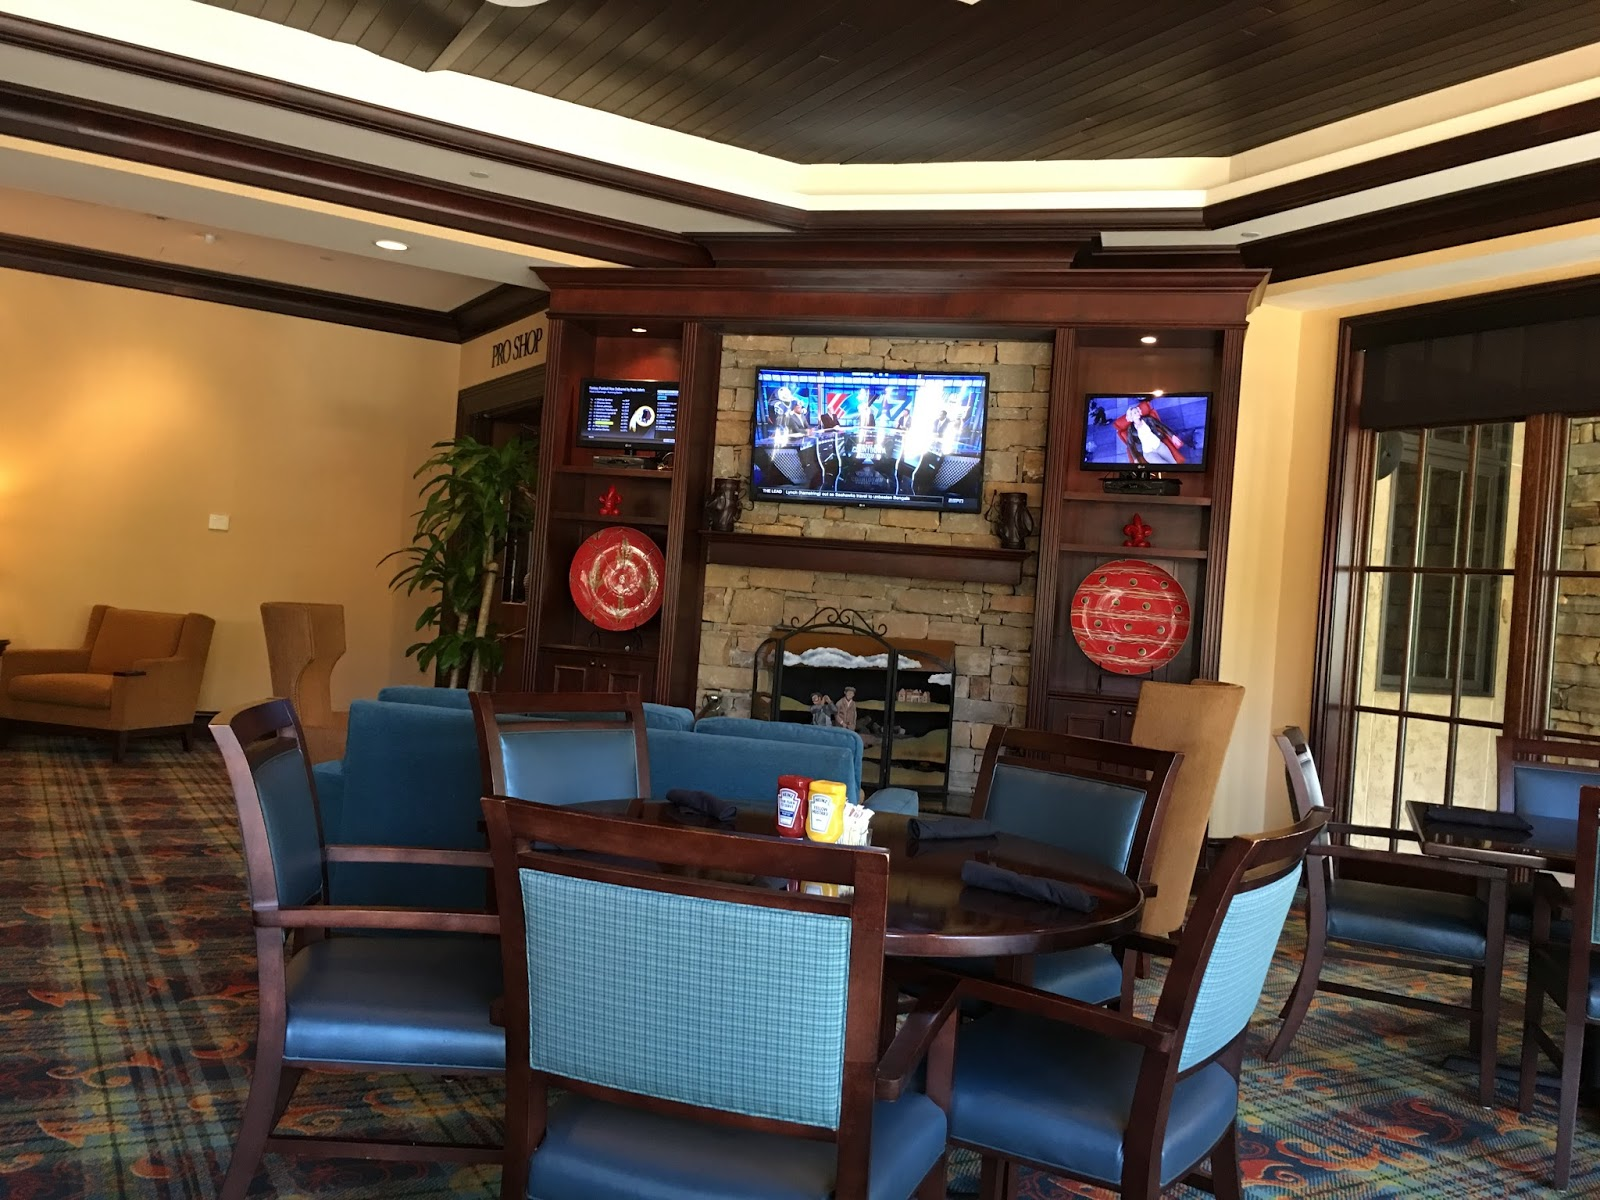 GREAT PLACE TO GRAB A BEER, EAT LUNCH OR DINNER AND WATCH A GAME